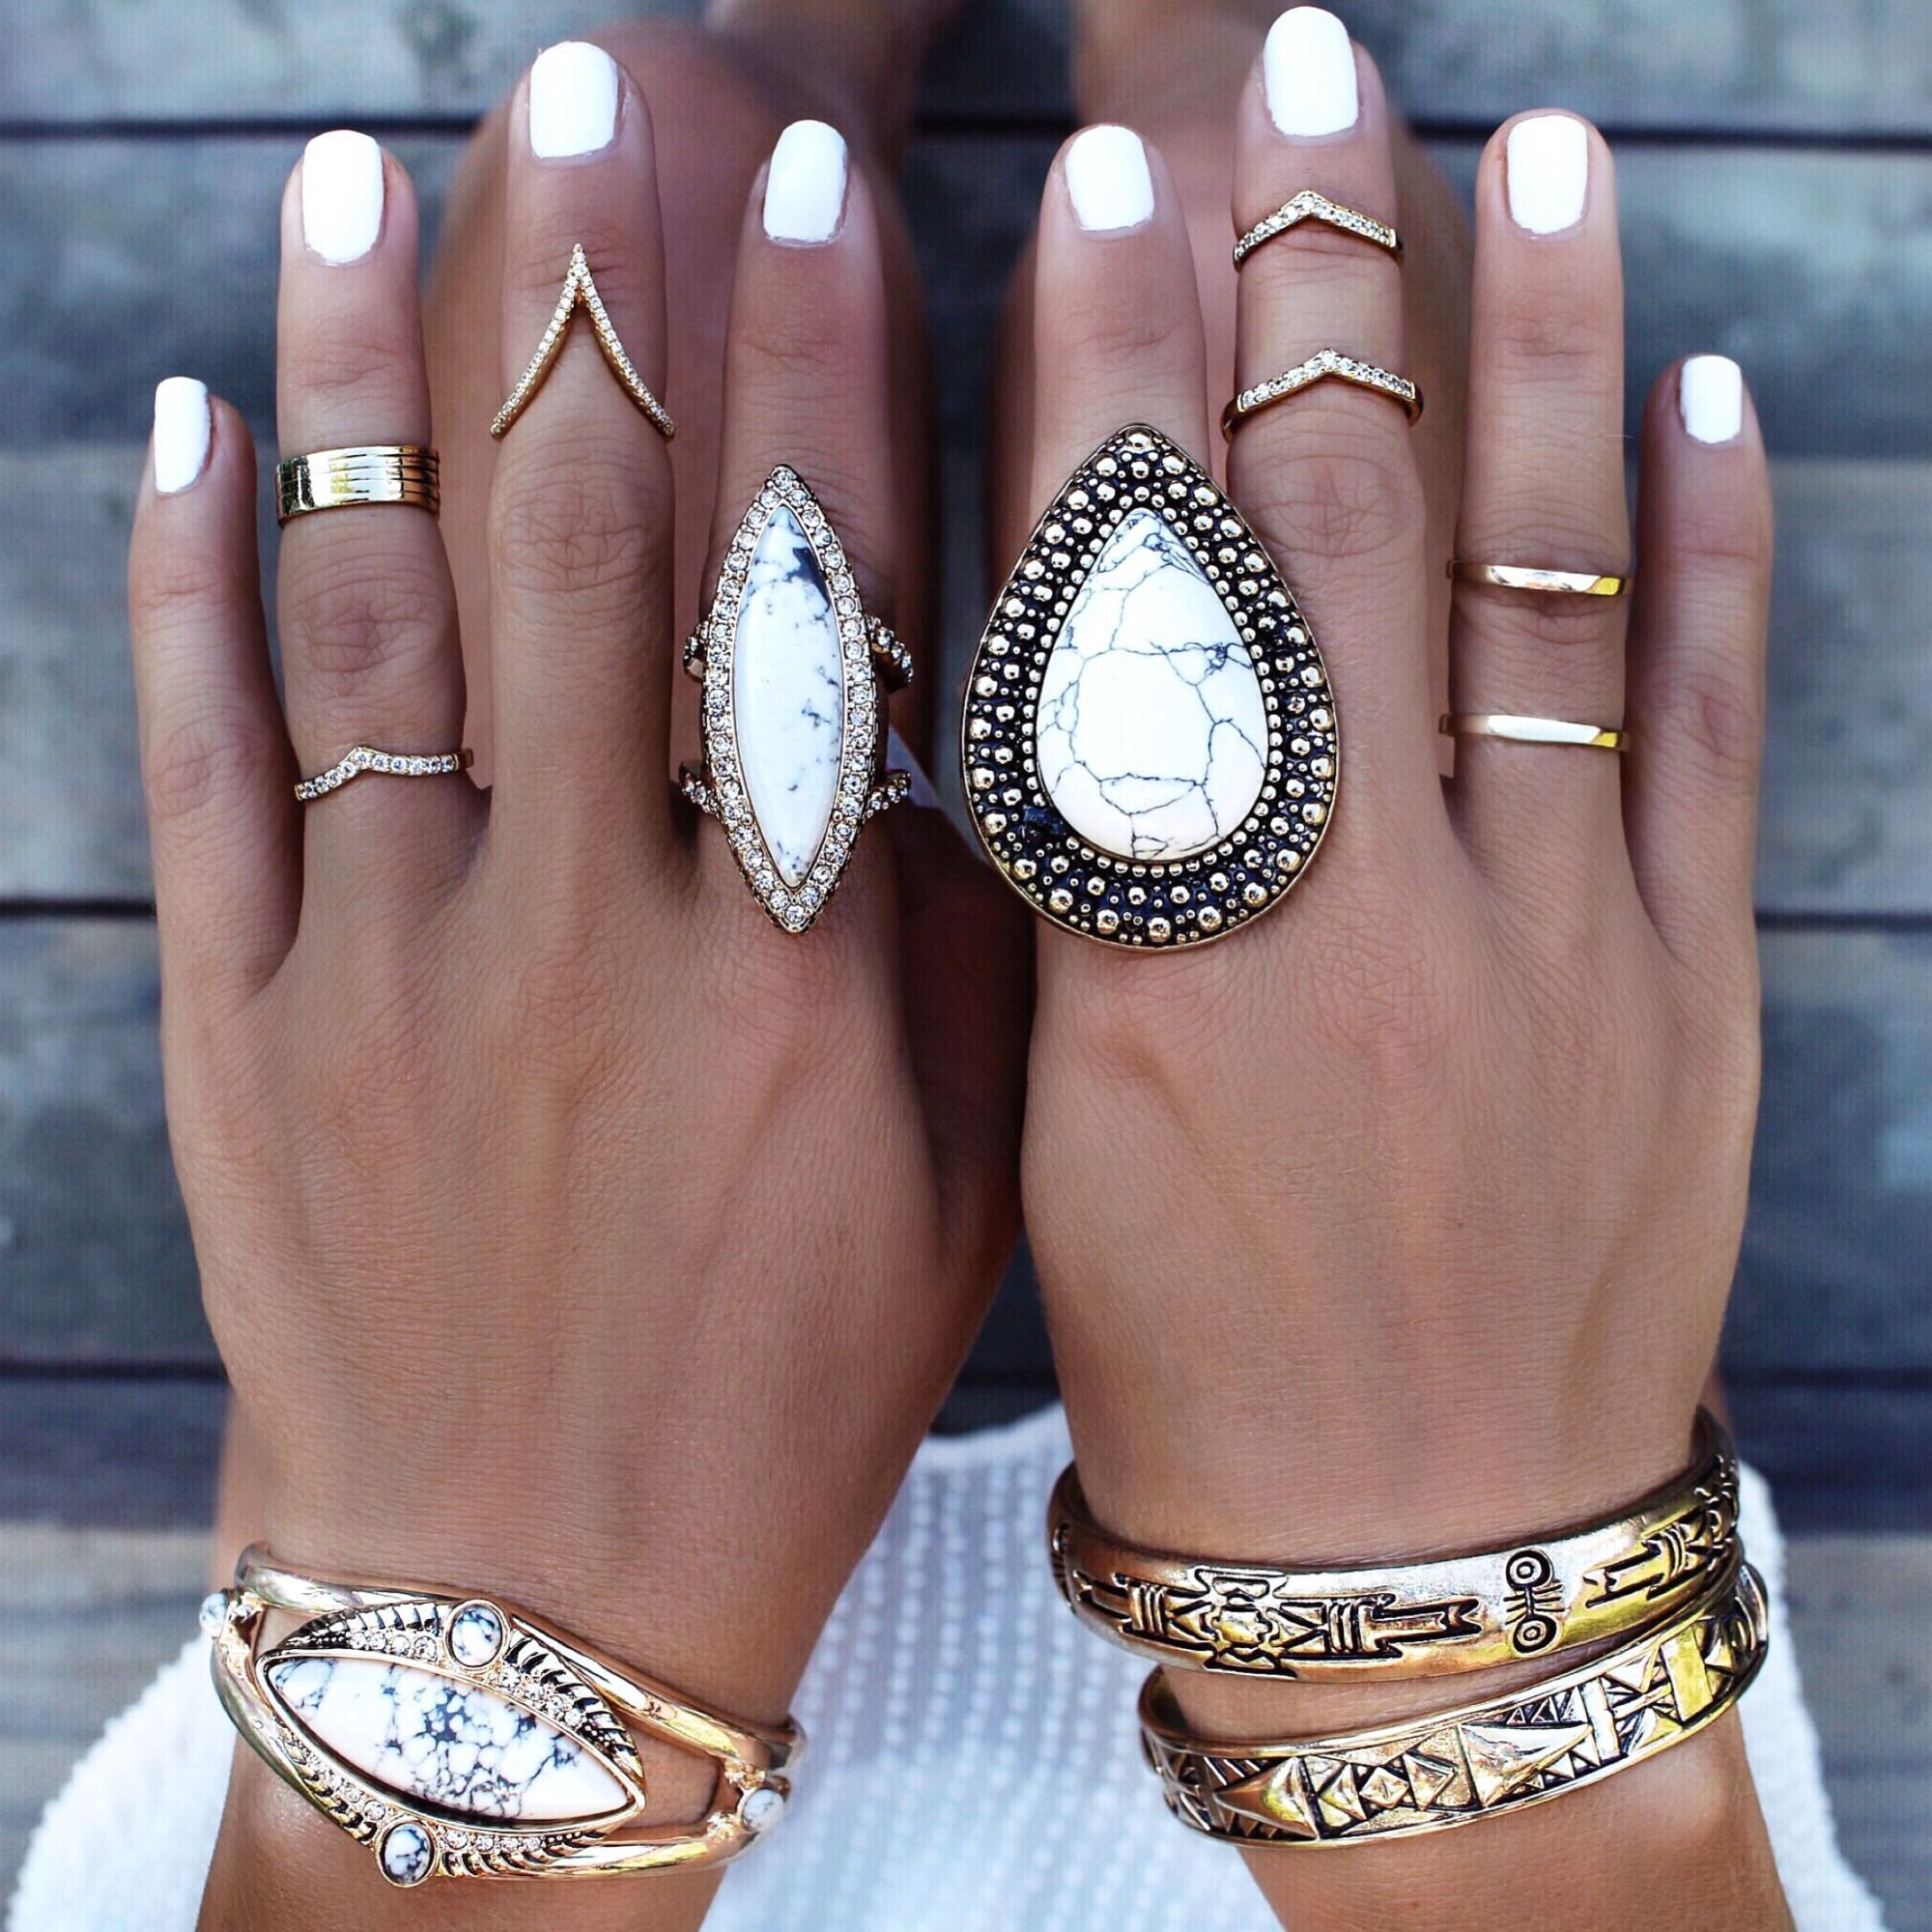 GypsyLovinLight: rings